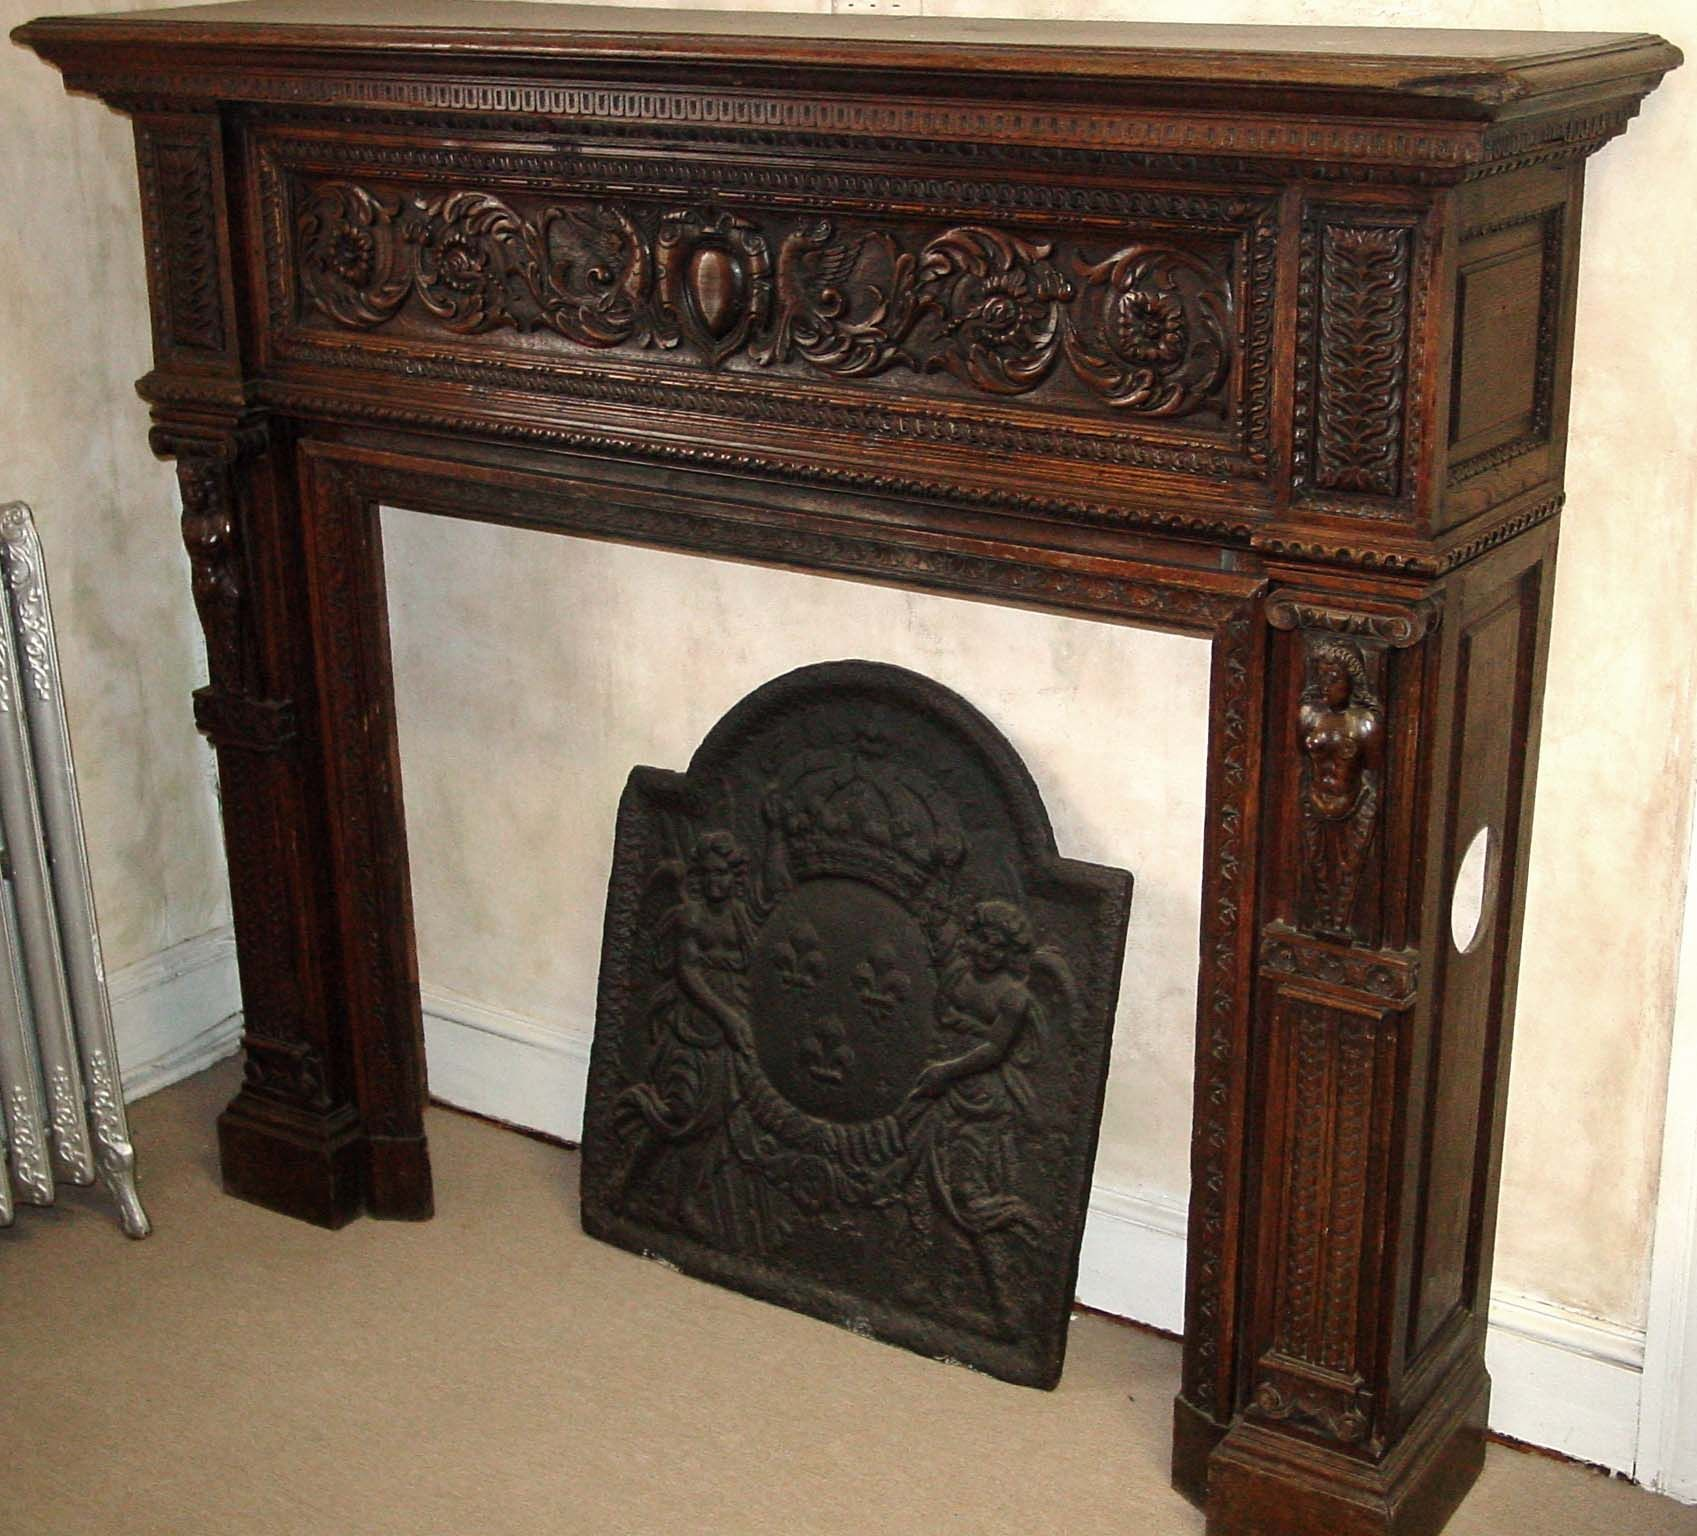 Antique fireplace mantels   French  hand carved wood fireplace mantelantique fireplace mantels   French  hand carved wood fireplace  . Old Wood Fireplace Mantels. Home Design Ideas